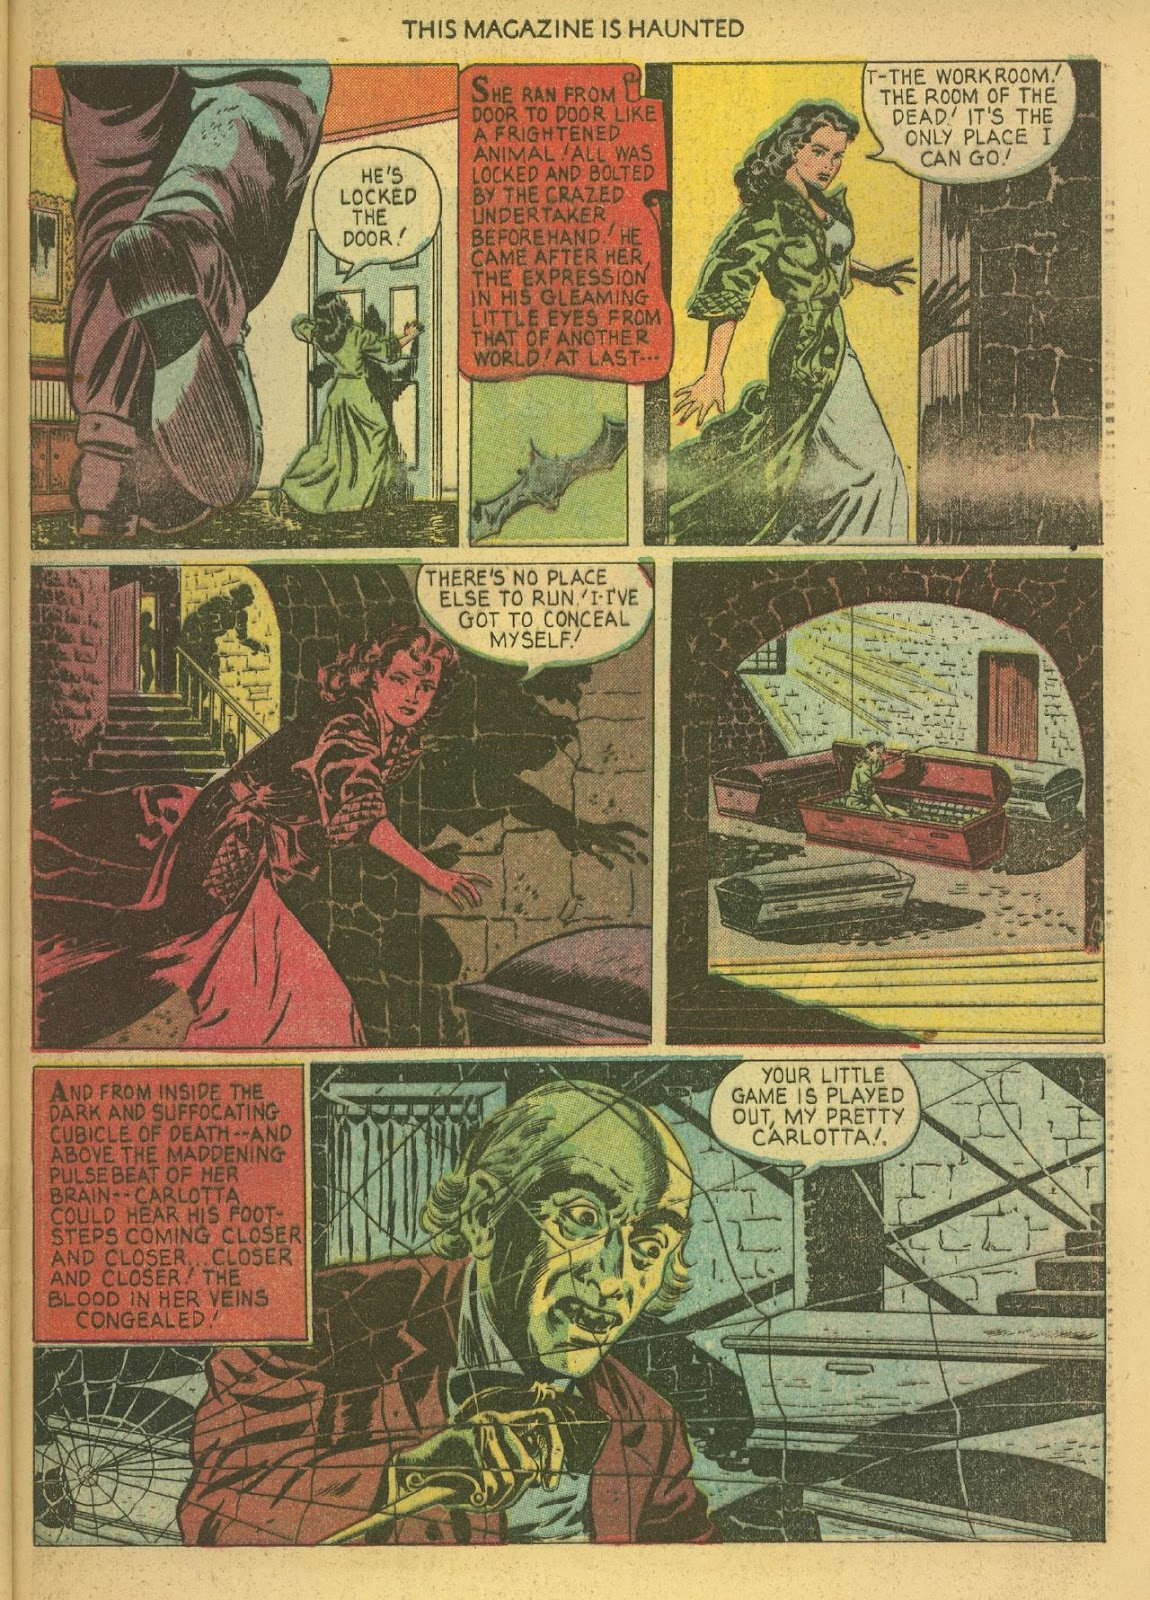 Read online This Magazine Is Haunted comic -  Issue #1 - 33